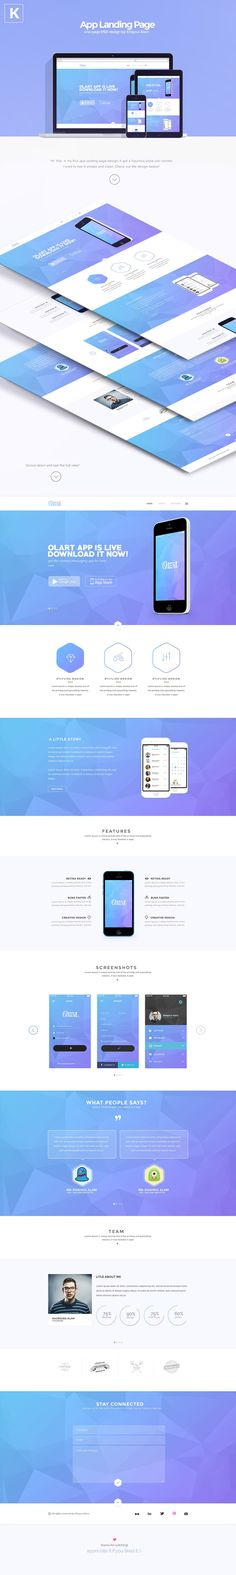 This is an one page app landing page, I designed this to keep it in my portfolio. :) Everybody with a business needs to have marketing platform that would provide a website, with lead capture up to 10K leads, sales funnels, play videos, and work on PC, Tablet and notepad for less than US$50.00 monthly fee. Join us for the FREE webinar about building your marketing platform.  Click on the link. http://brdcst.me/signup/?w=1950